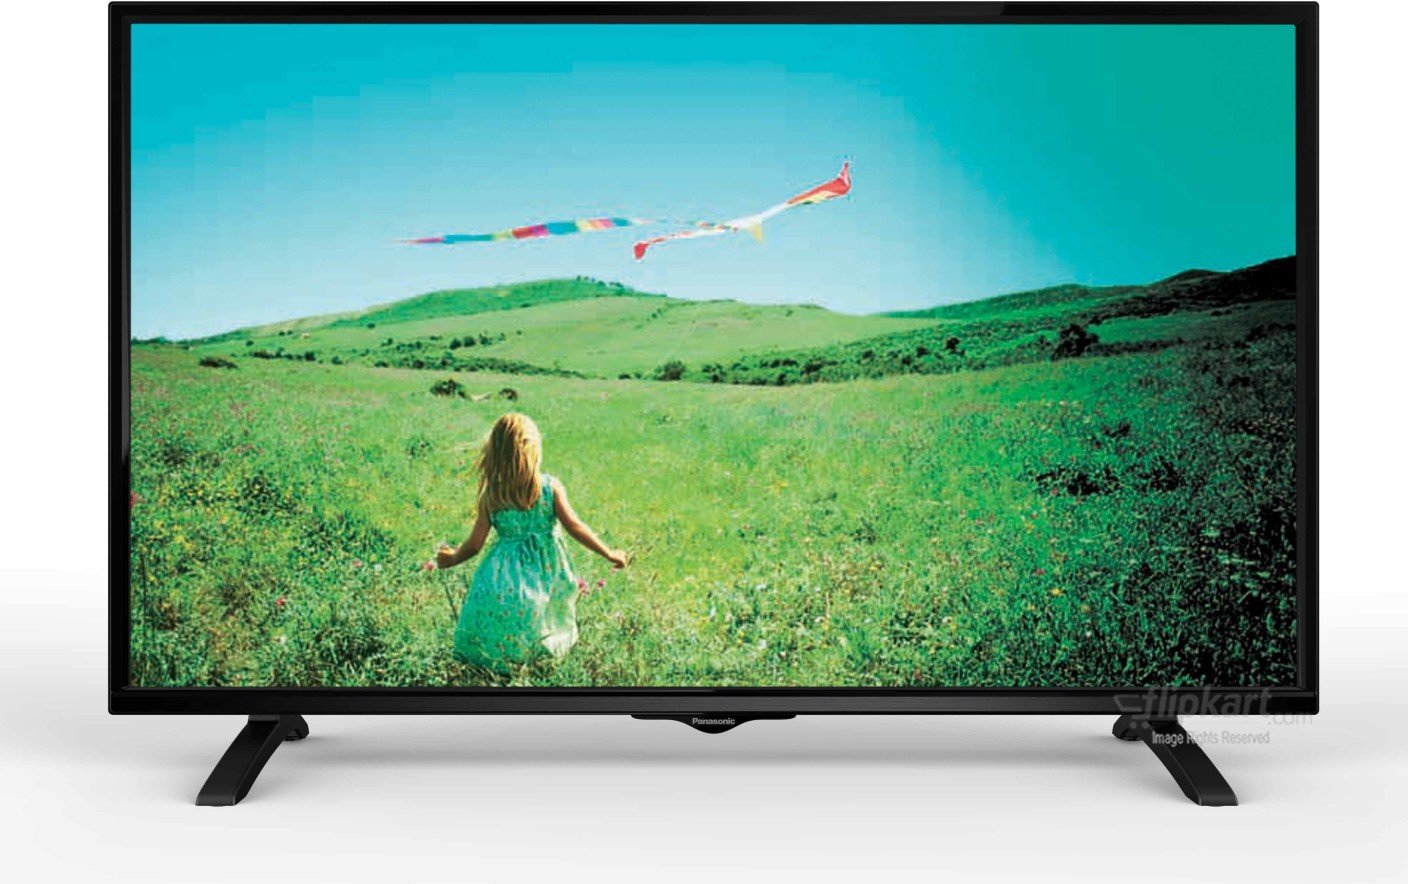 panasonic 80 cm 32 inch full hd led tv online at best. Black Bedroom Furniture Sets. Home Design Ideas